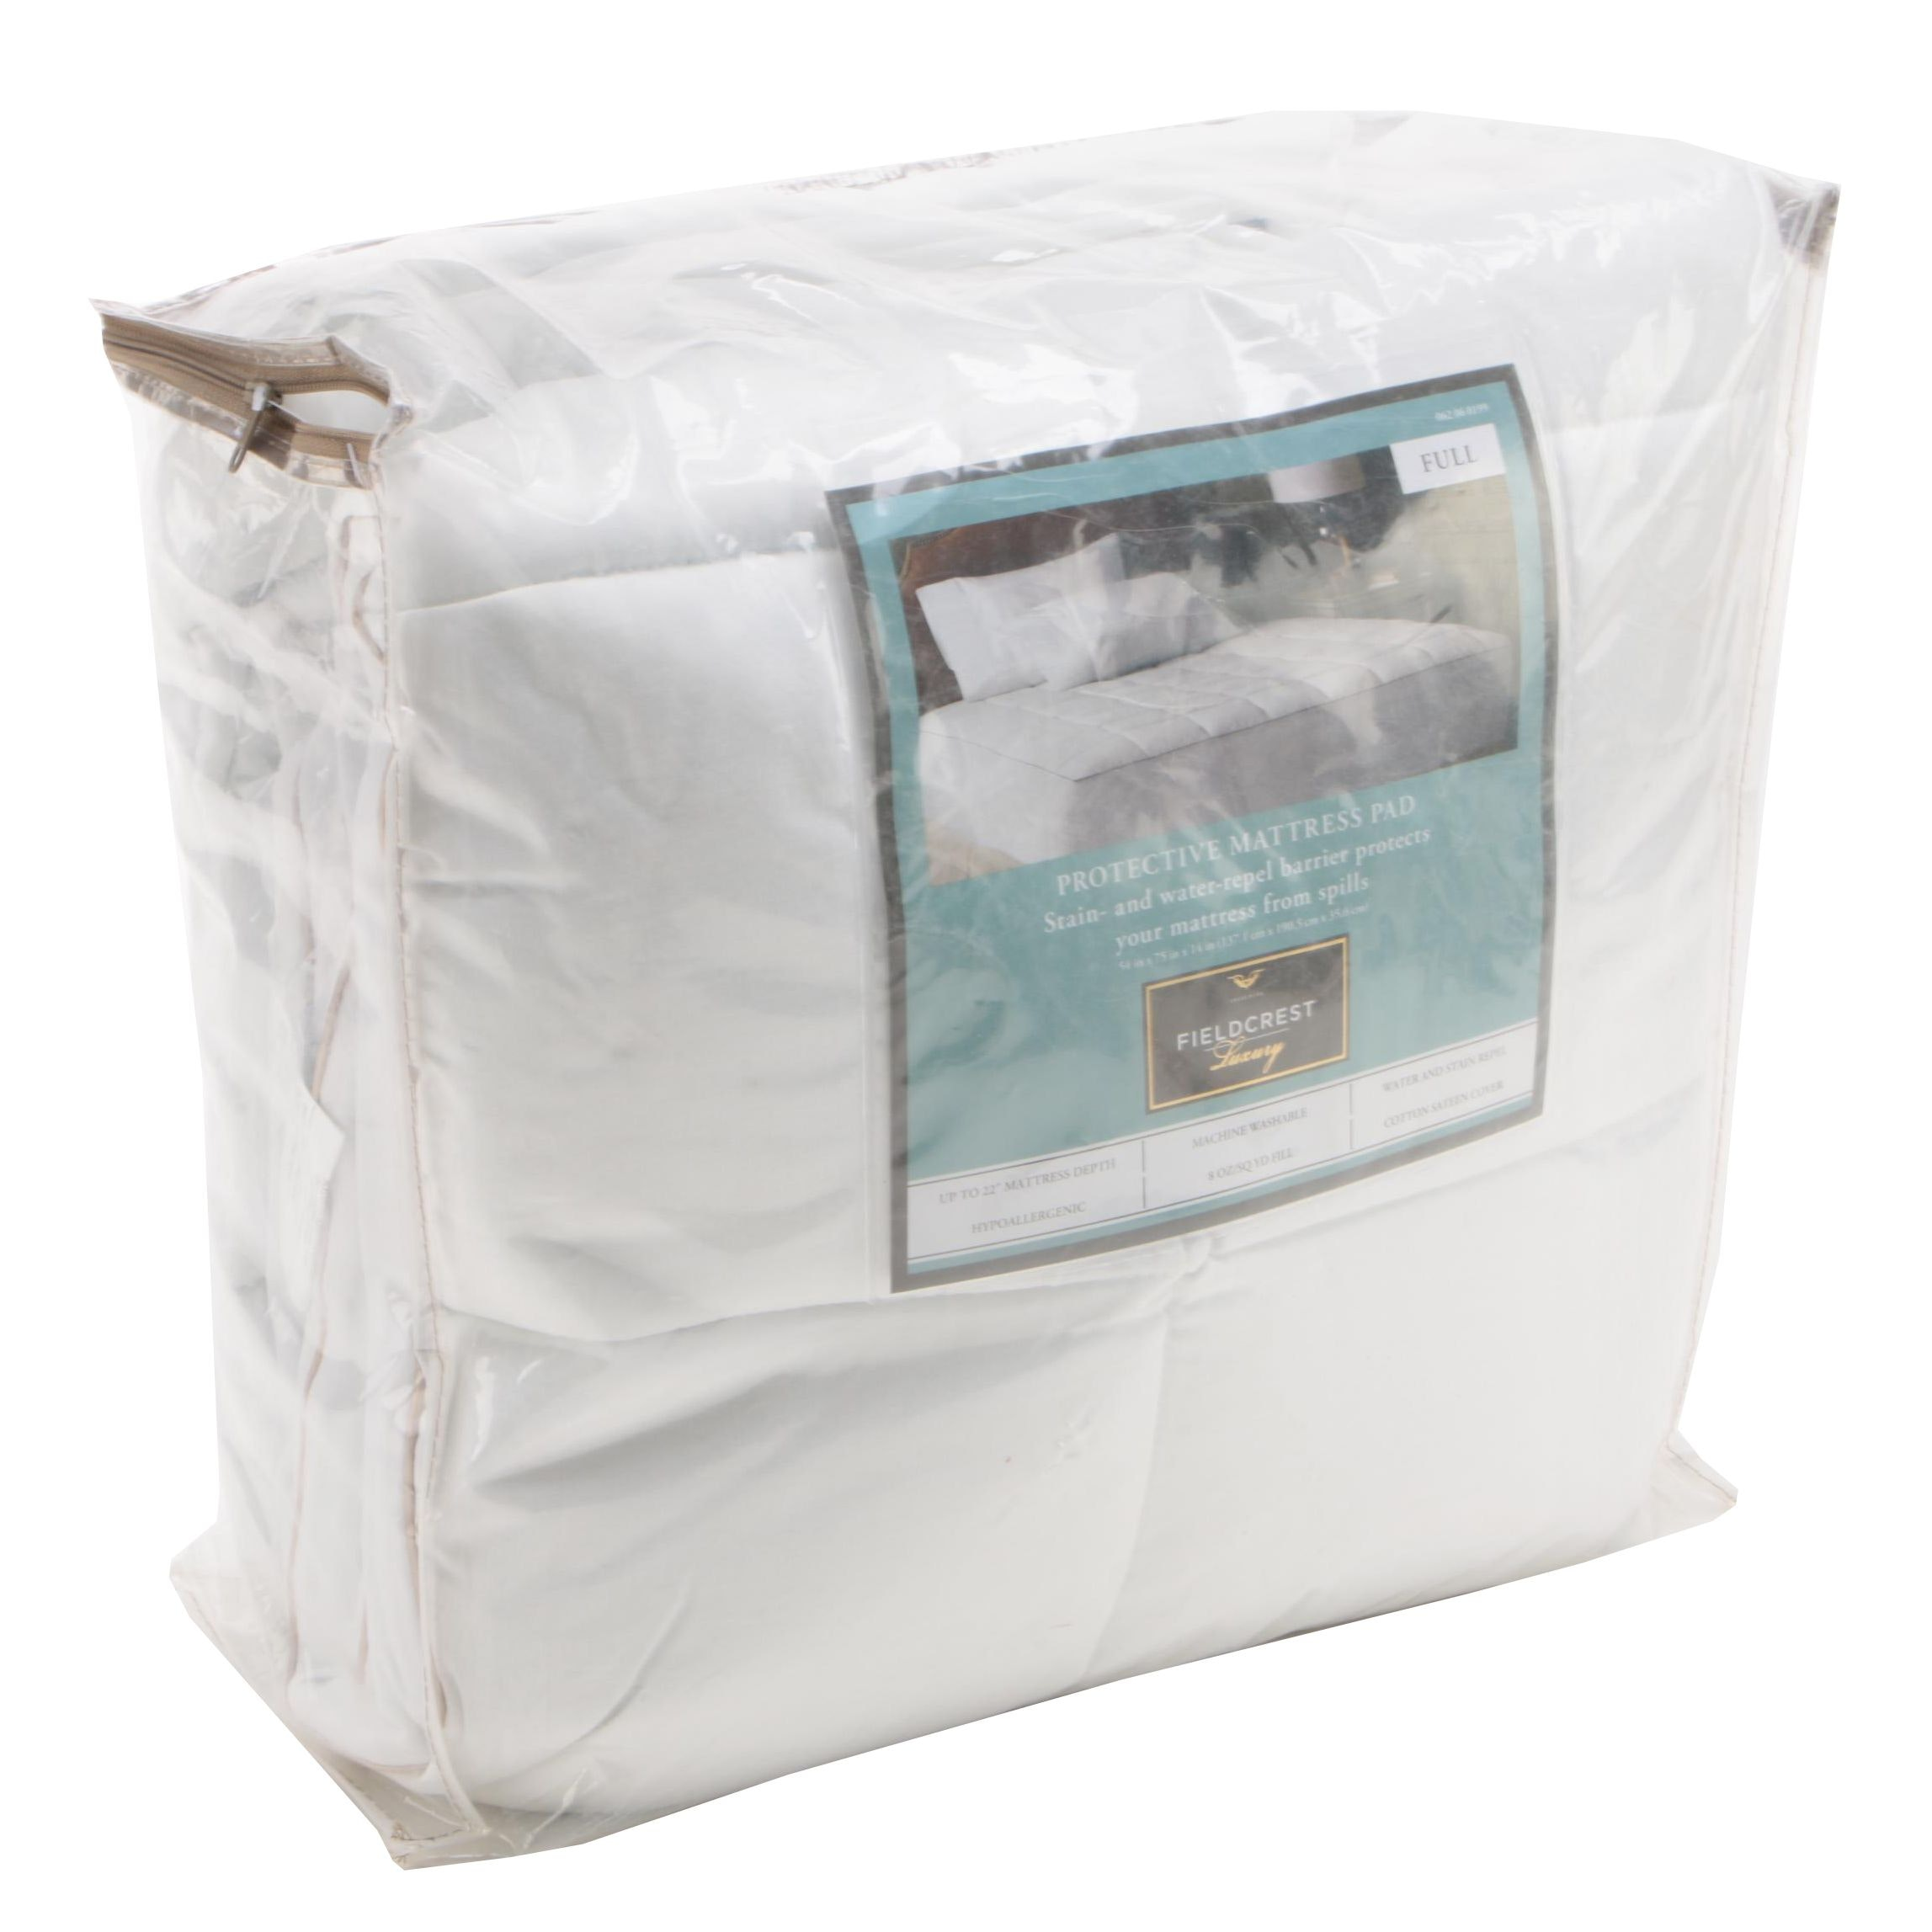 Fieldcrest Supima Cotton Sheets and Other Bedding